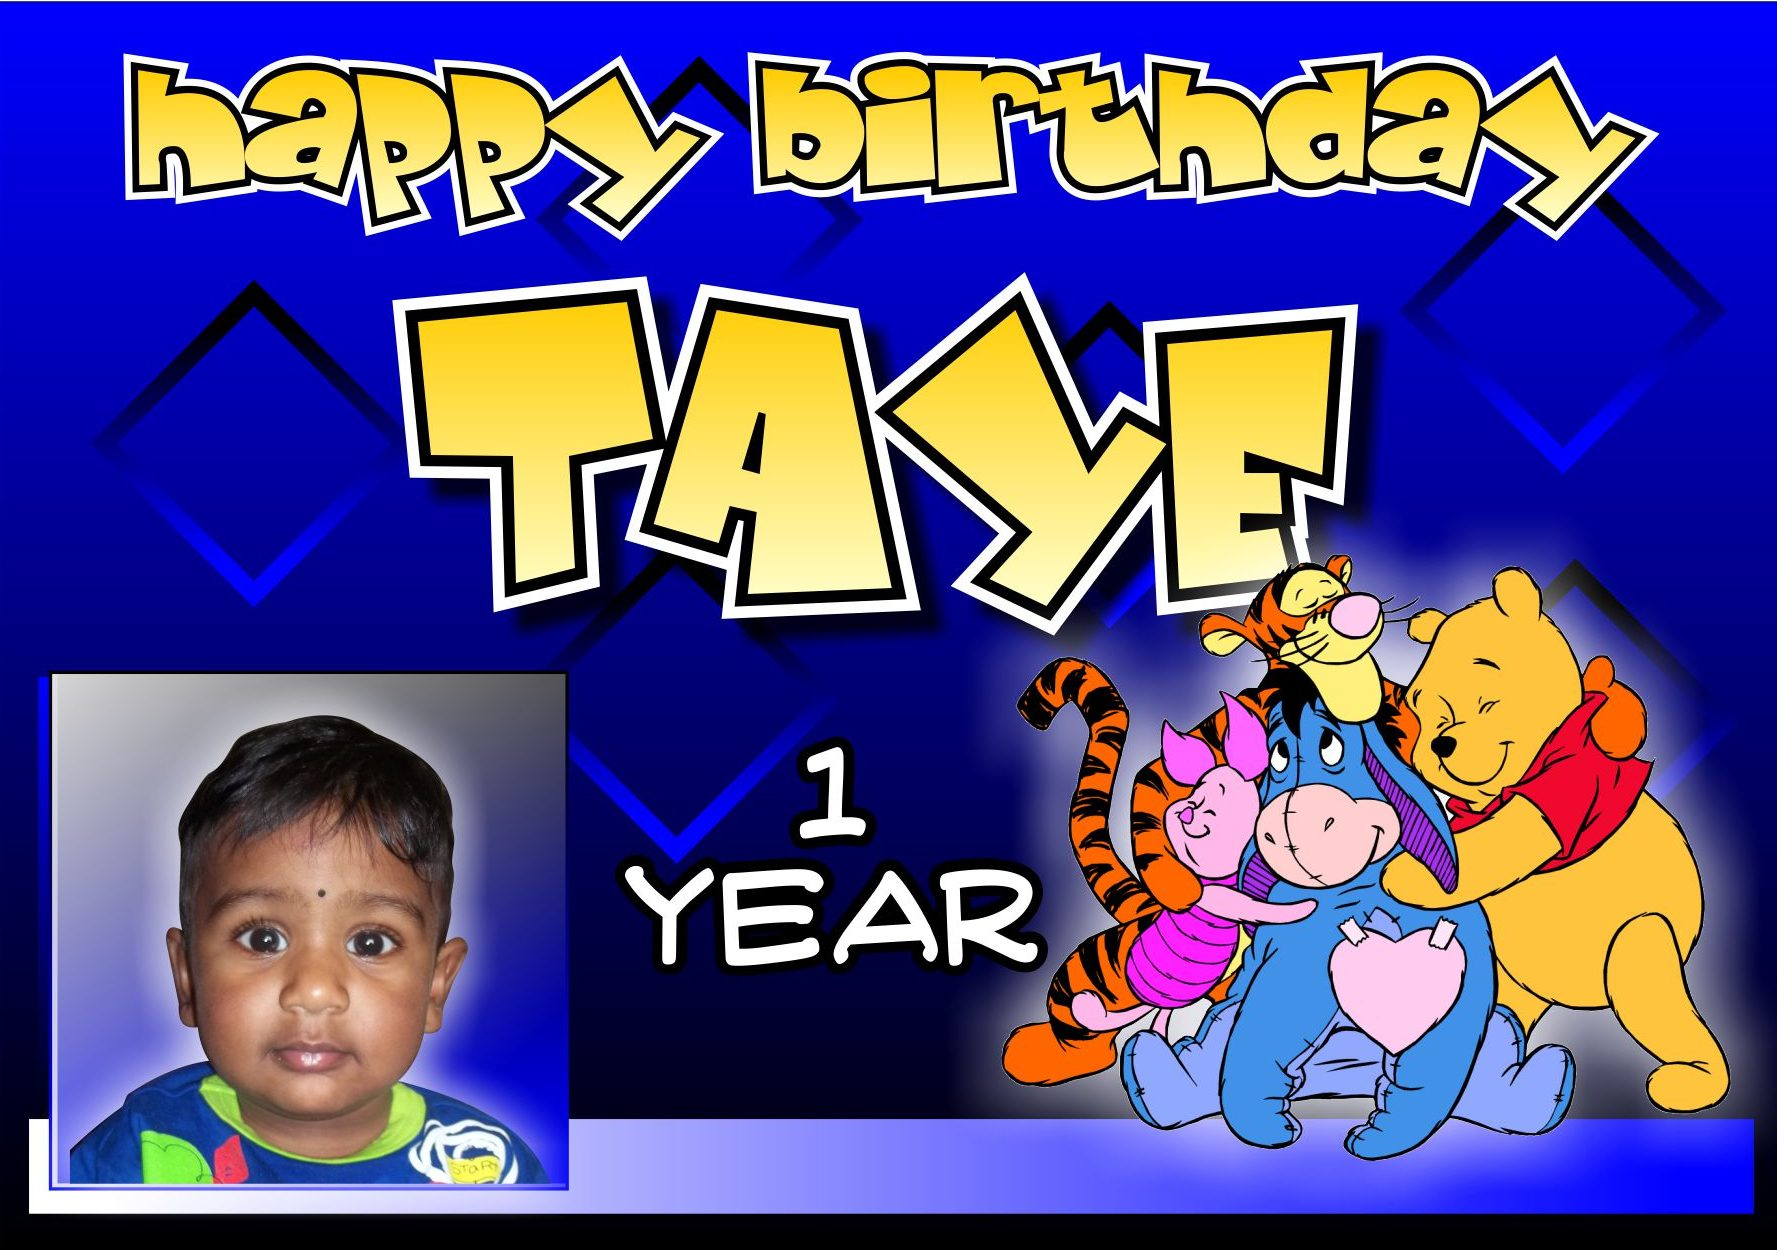 blue, kids, banners, cartoons, designs, birthdays, colourful, colorful, children, cute, winnie, pooh, tigger, eyore, piglet, taye